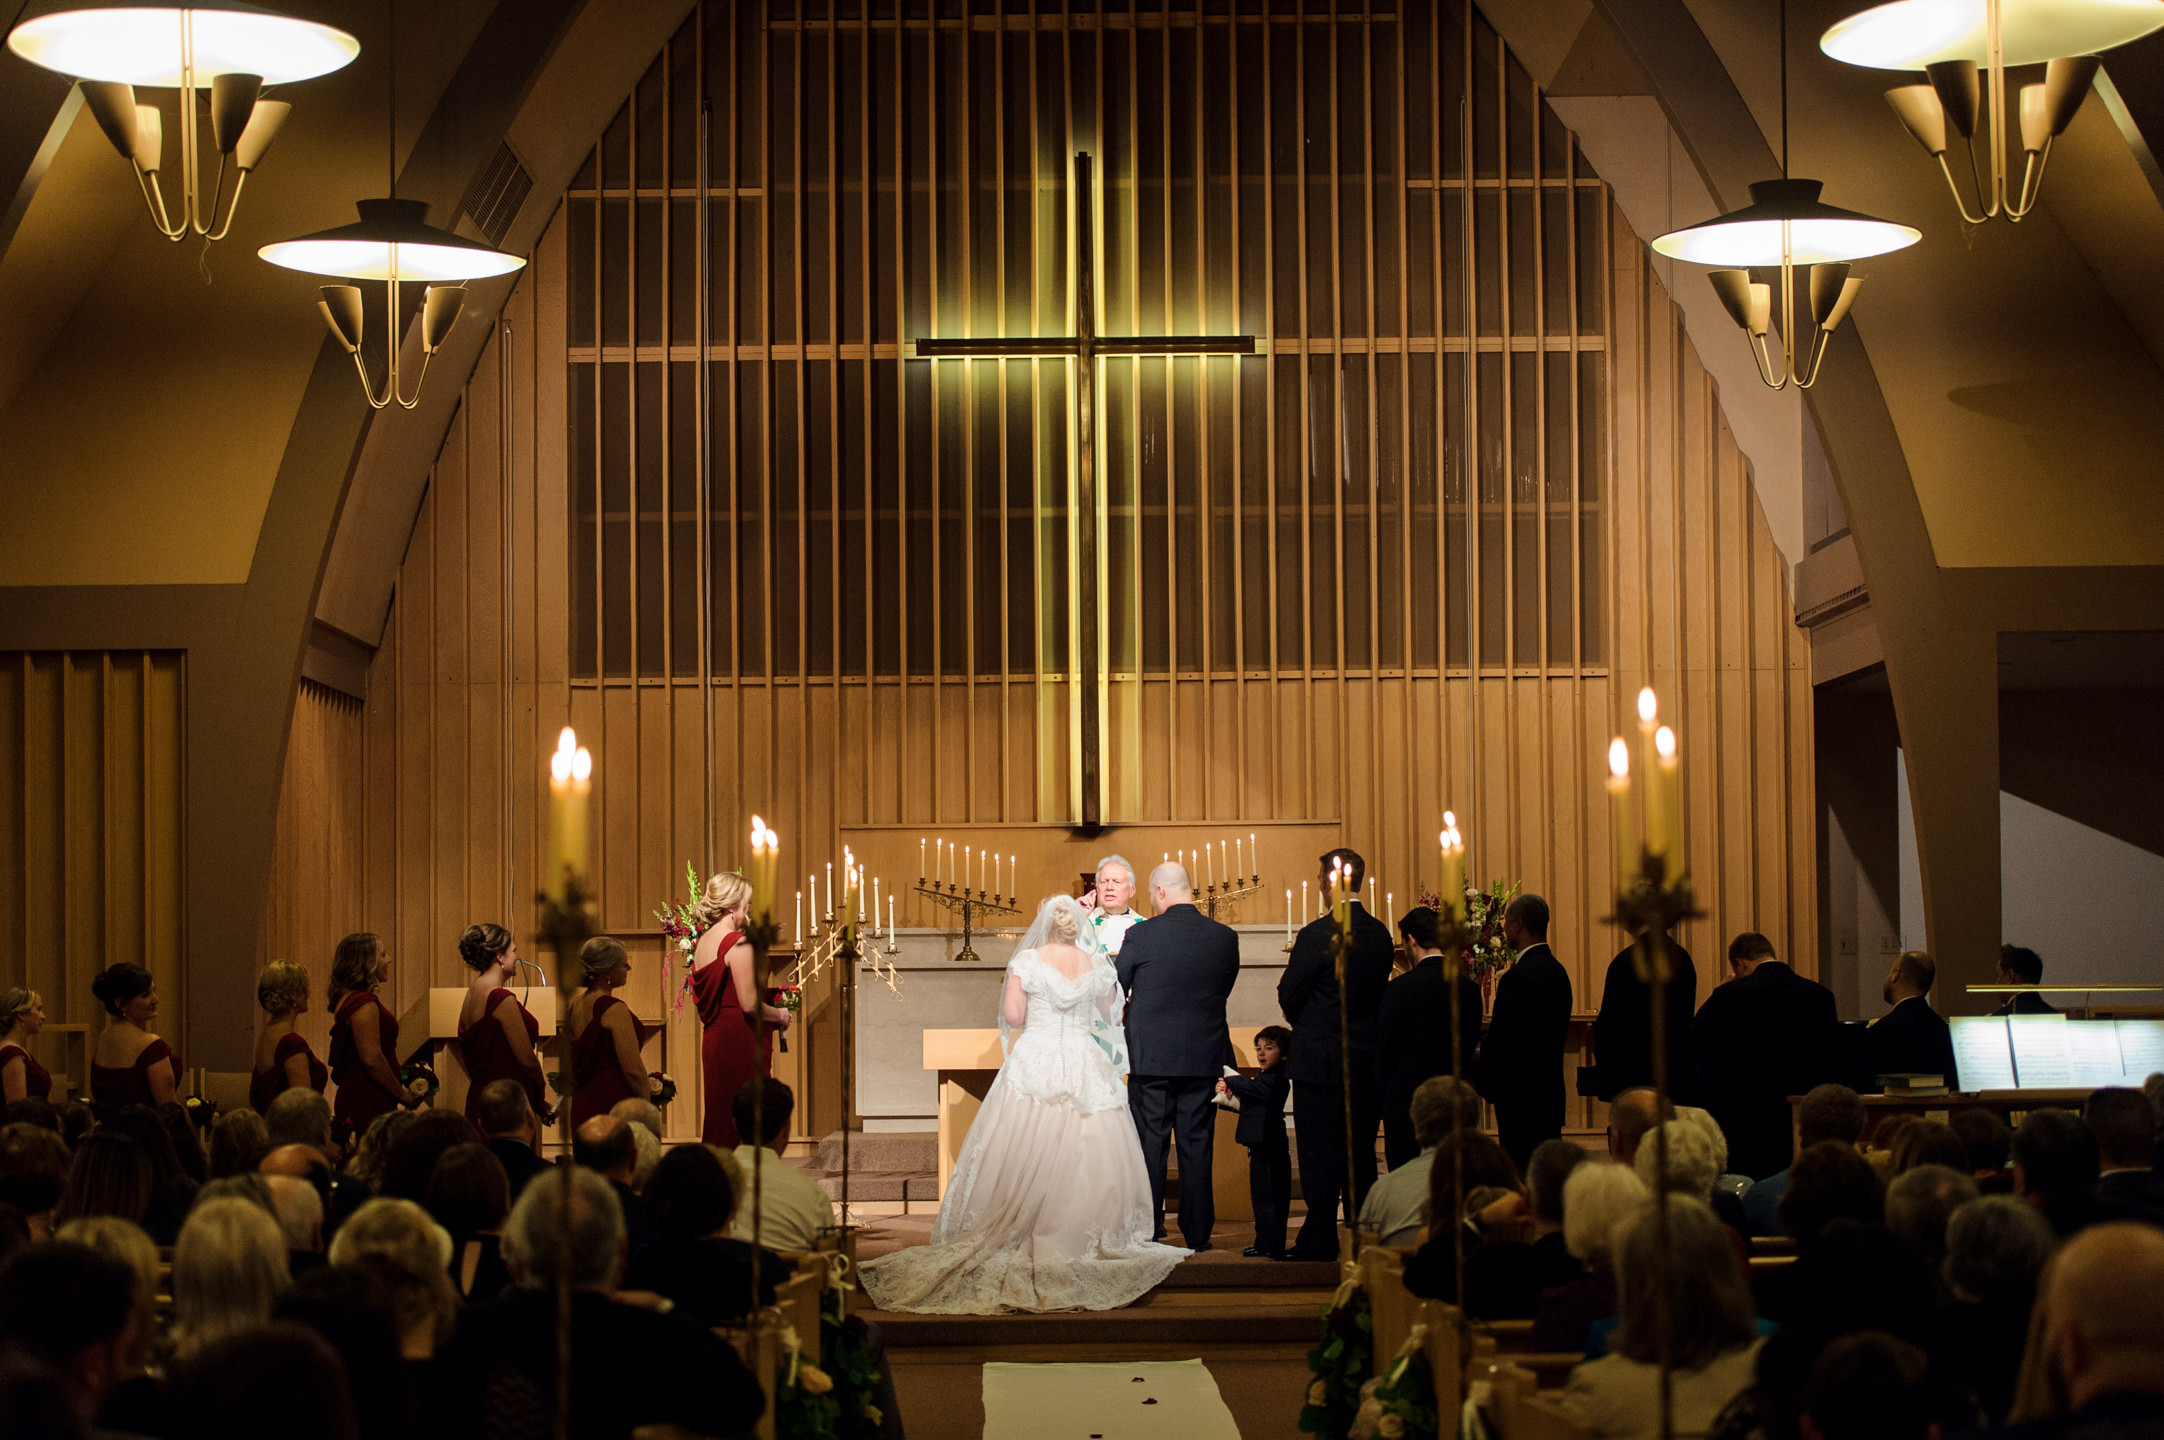 Bride and Groom Arrive at Altar During Wedding at University Lut